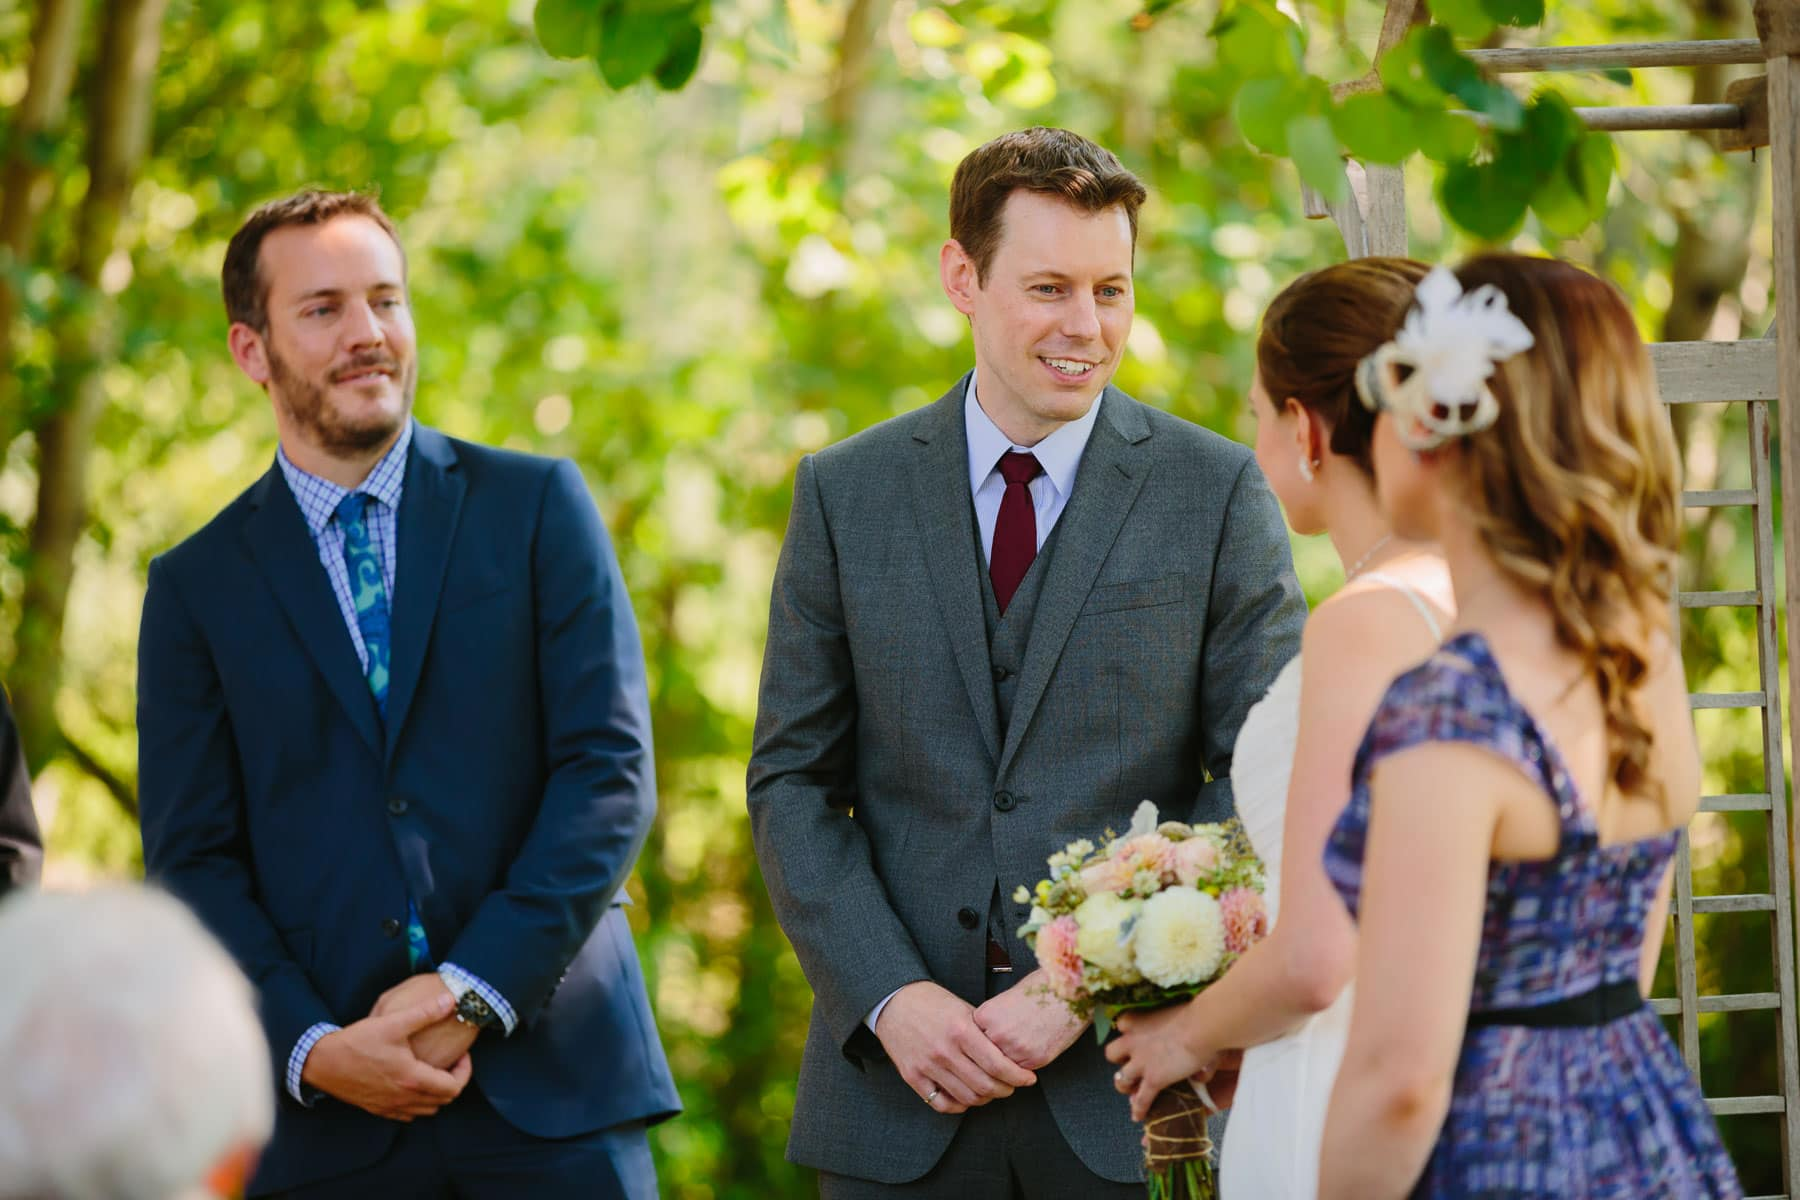 The groom speaks his vows while best man watches during ceremony in these backyard wedding photos.